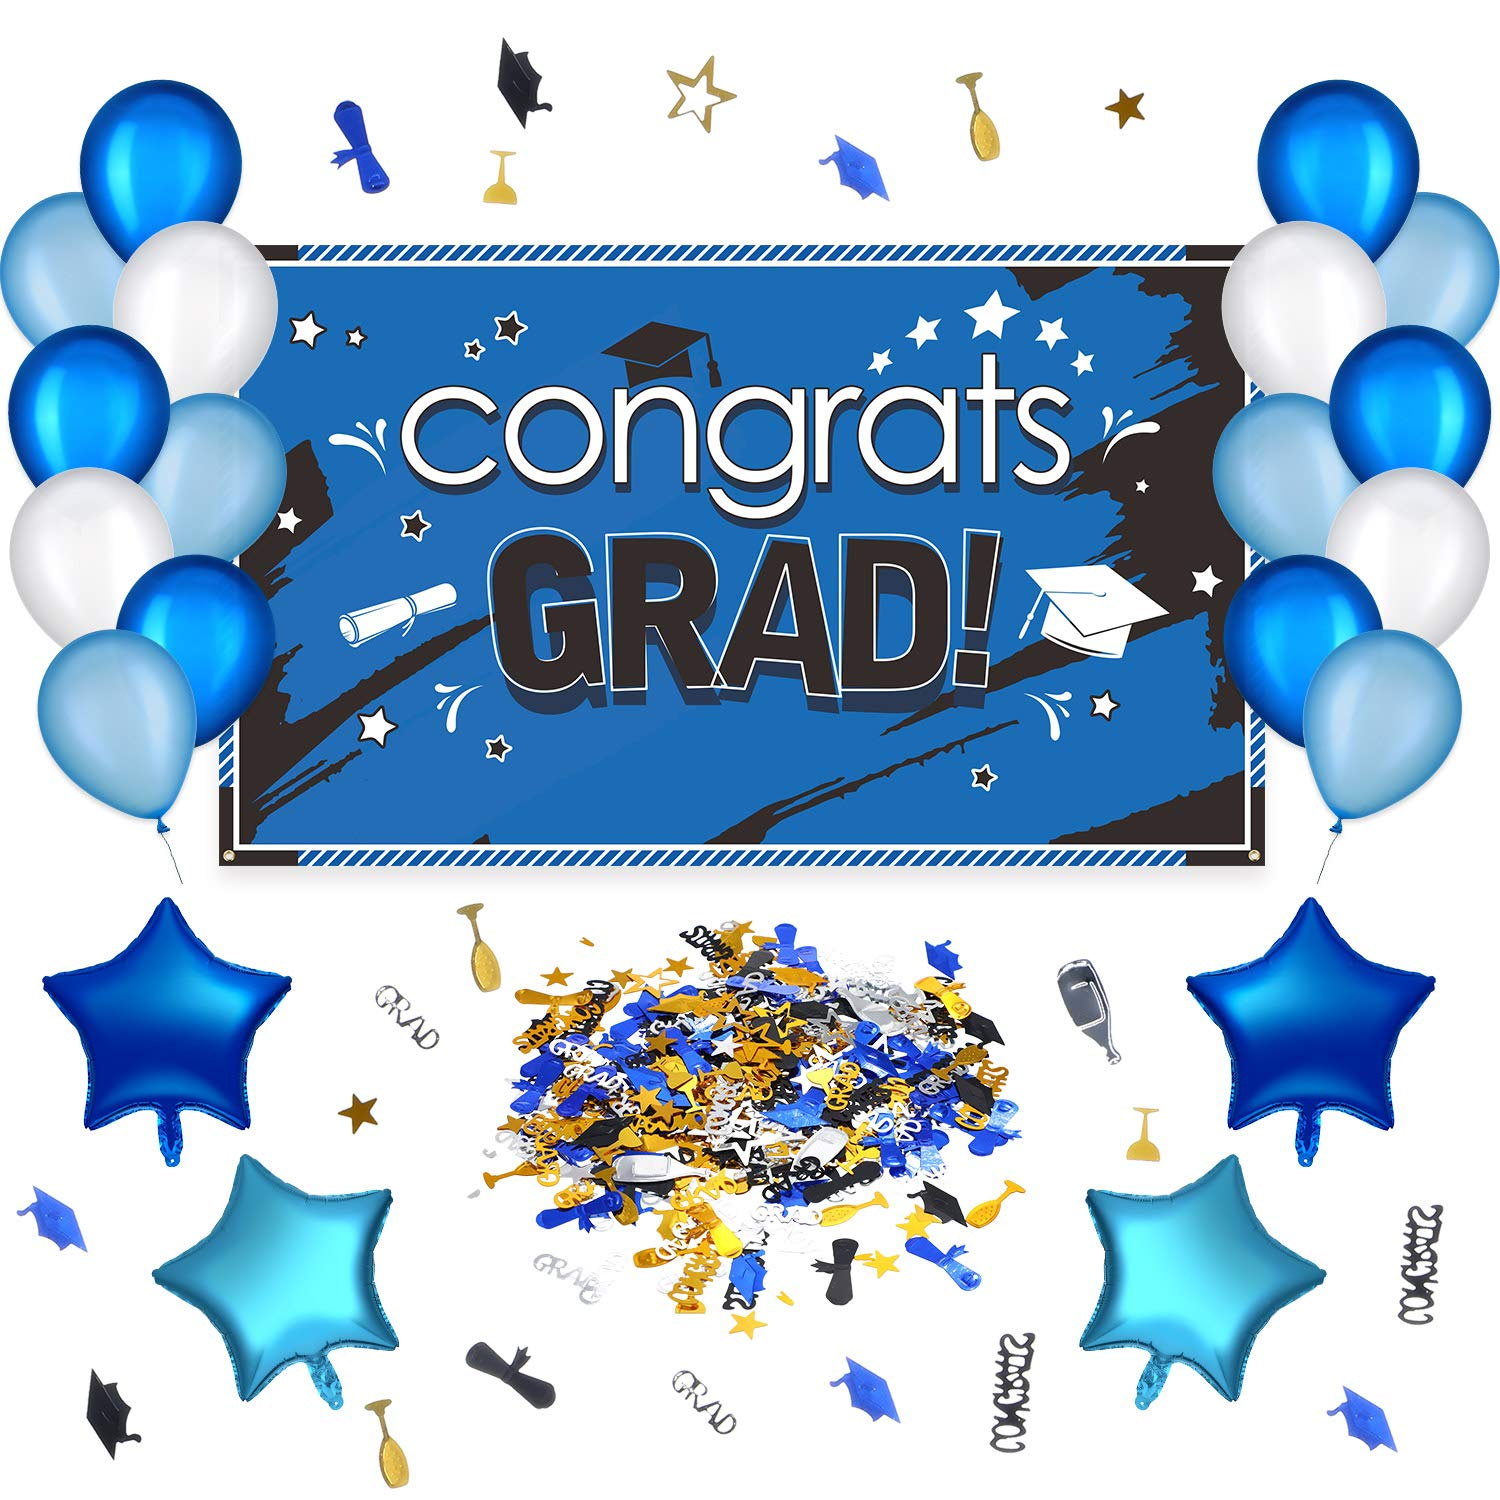 29 Pieces Graduation Party Decoration Kit, Congrats Grad Photo Backdrop Graduation Party Suppliers, Graduation Banner, Balloons and Confetti for Class of 2019 (Blue) by Blulu (Image #1)